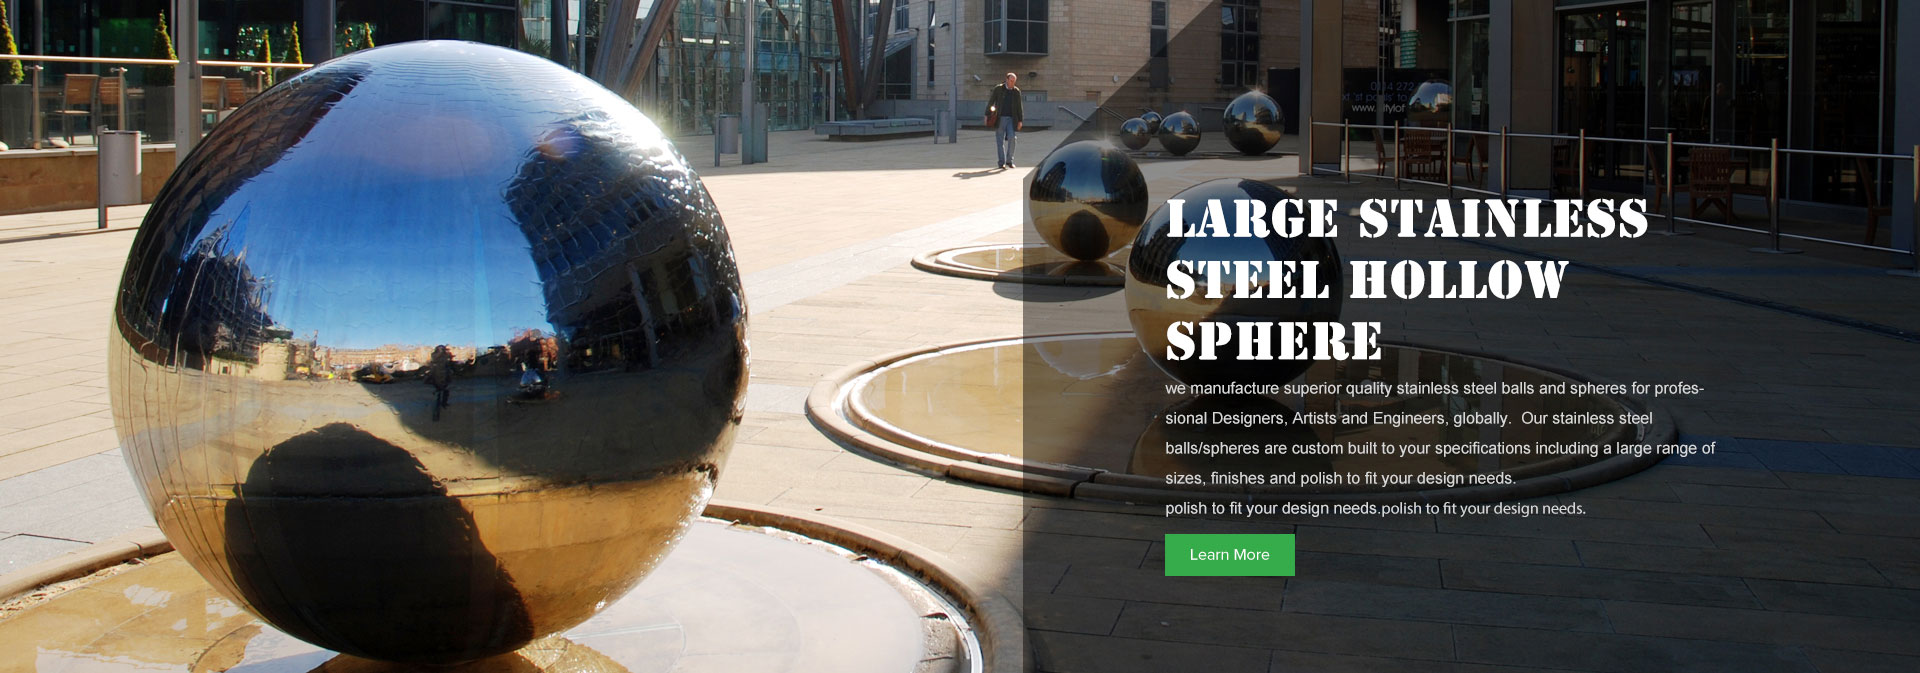 City Public Art Fountain Sphere